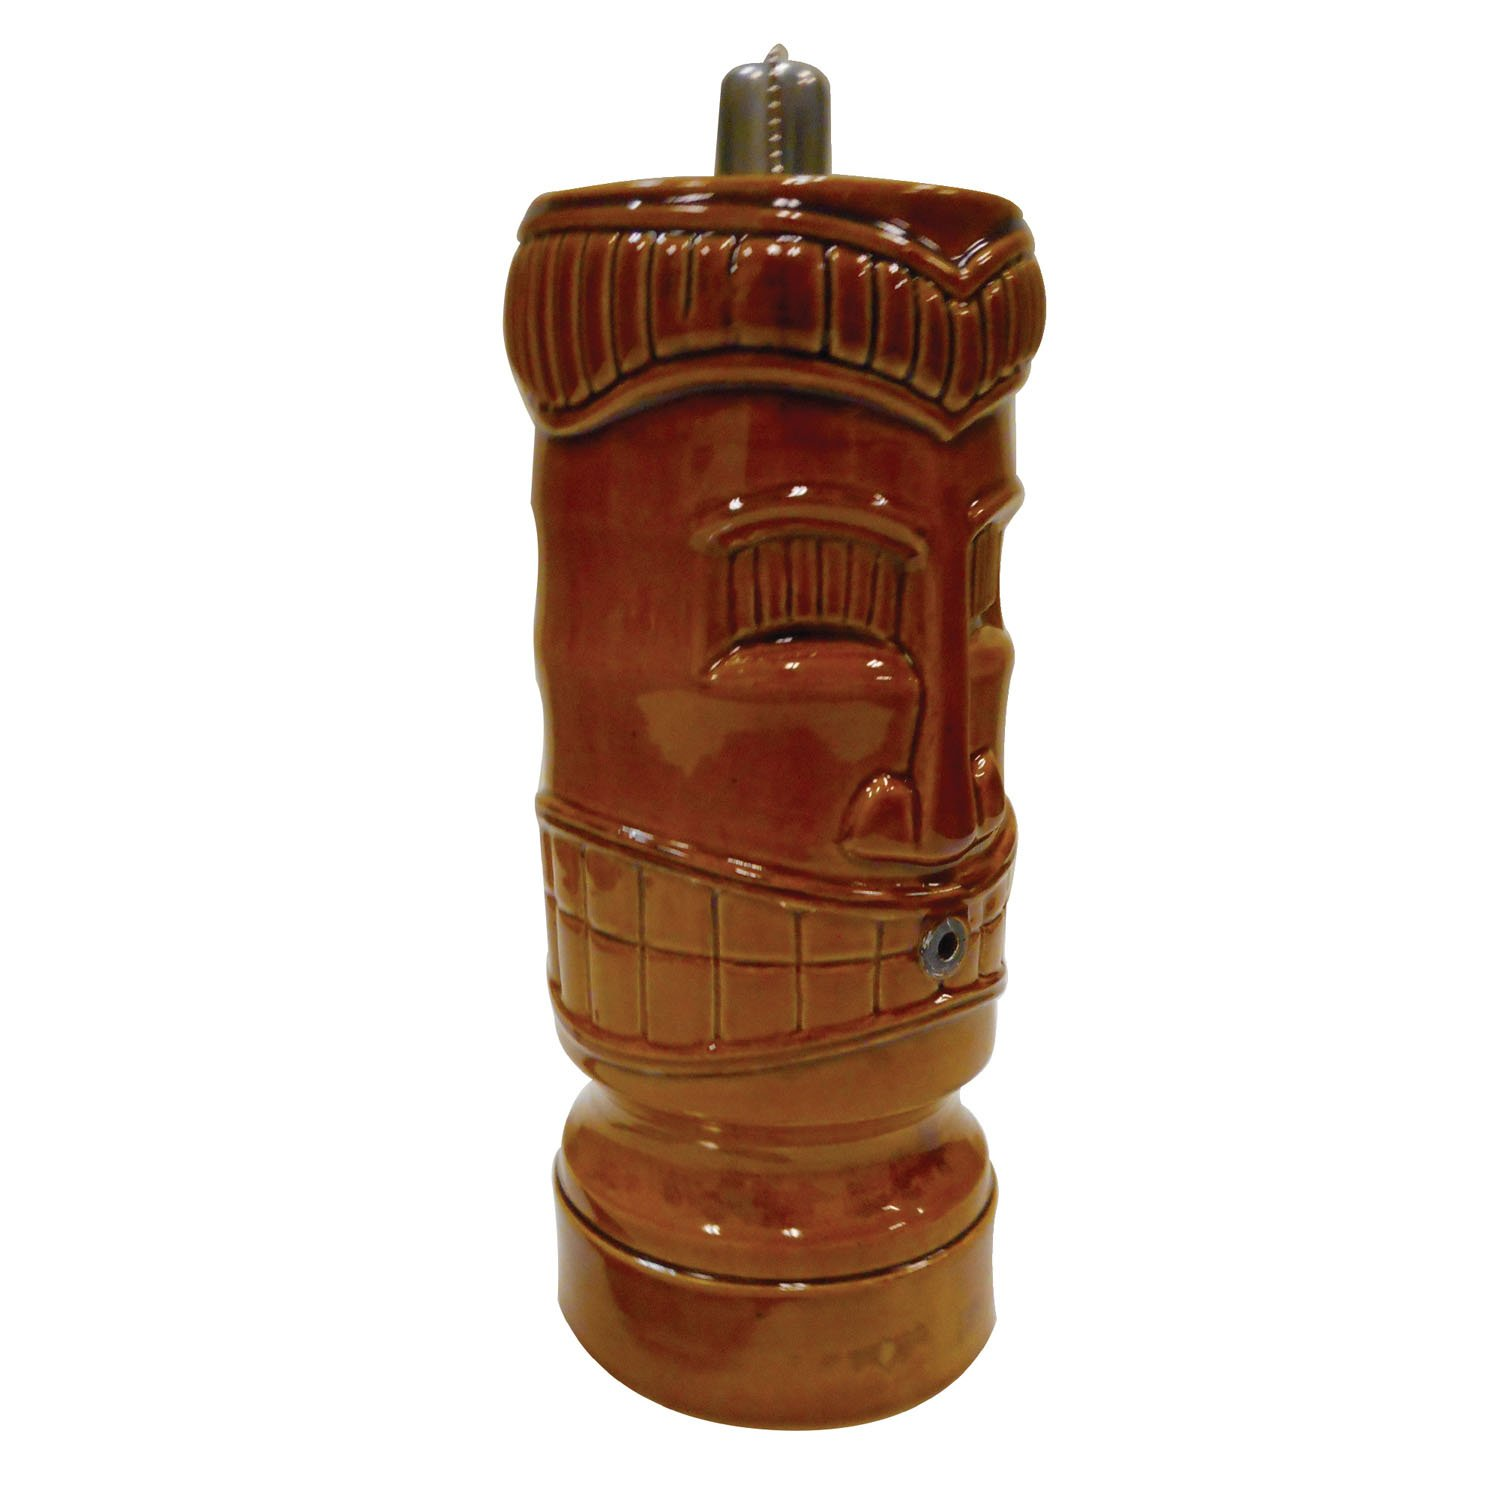 POND BOSS STIKIH Ceramic Tiki Torch Spitter, Honey by POND BOSS